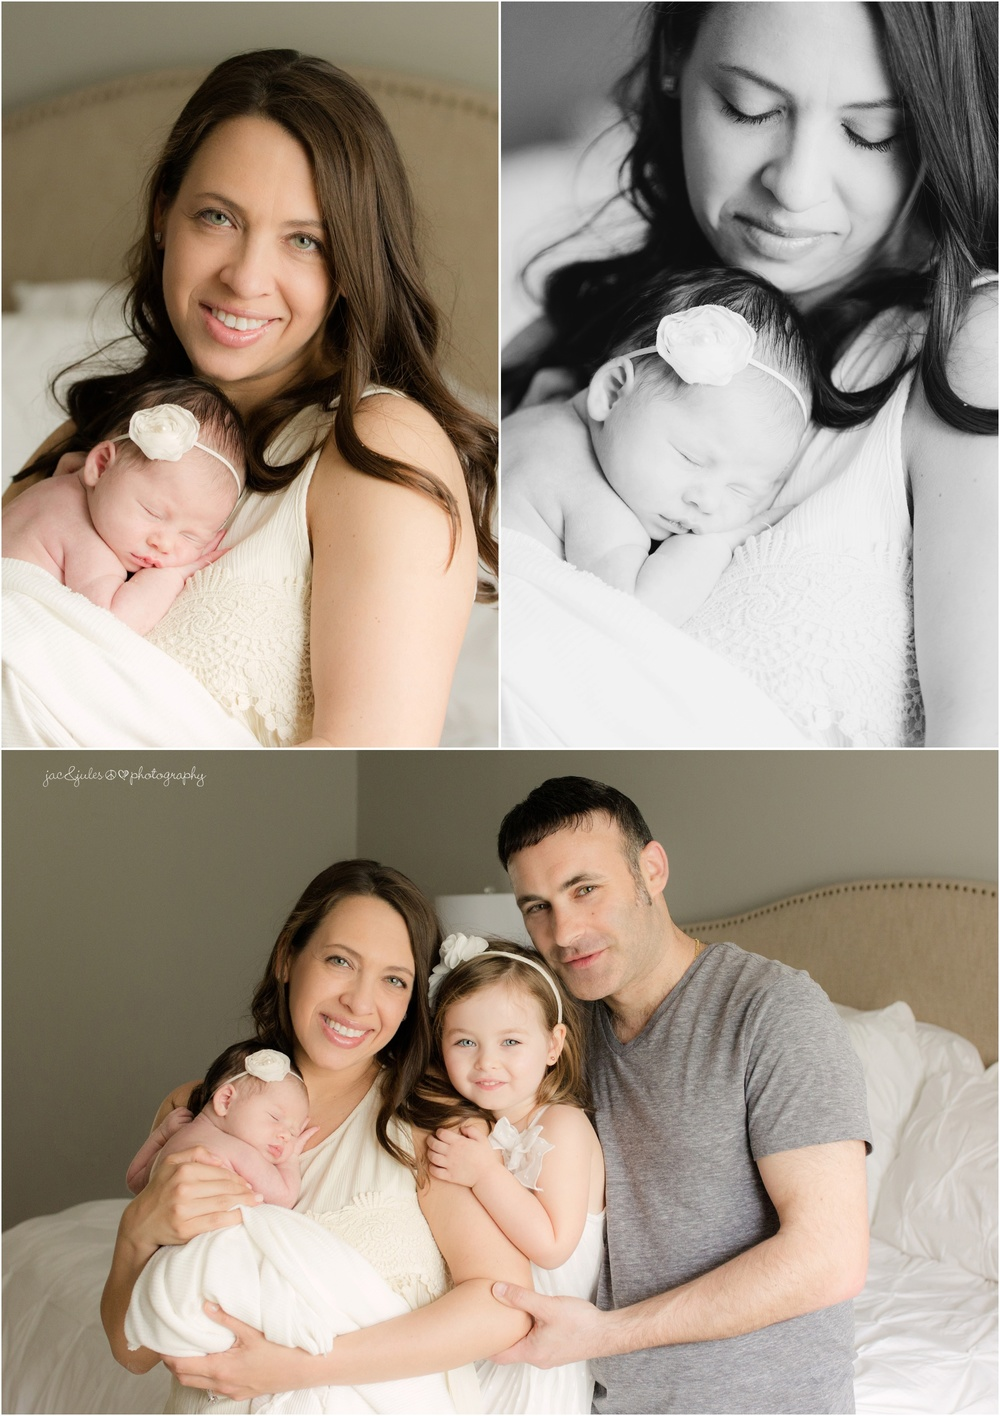 manalapan nj family with newborn baby girl